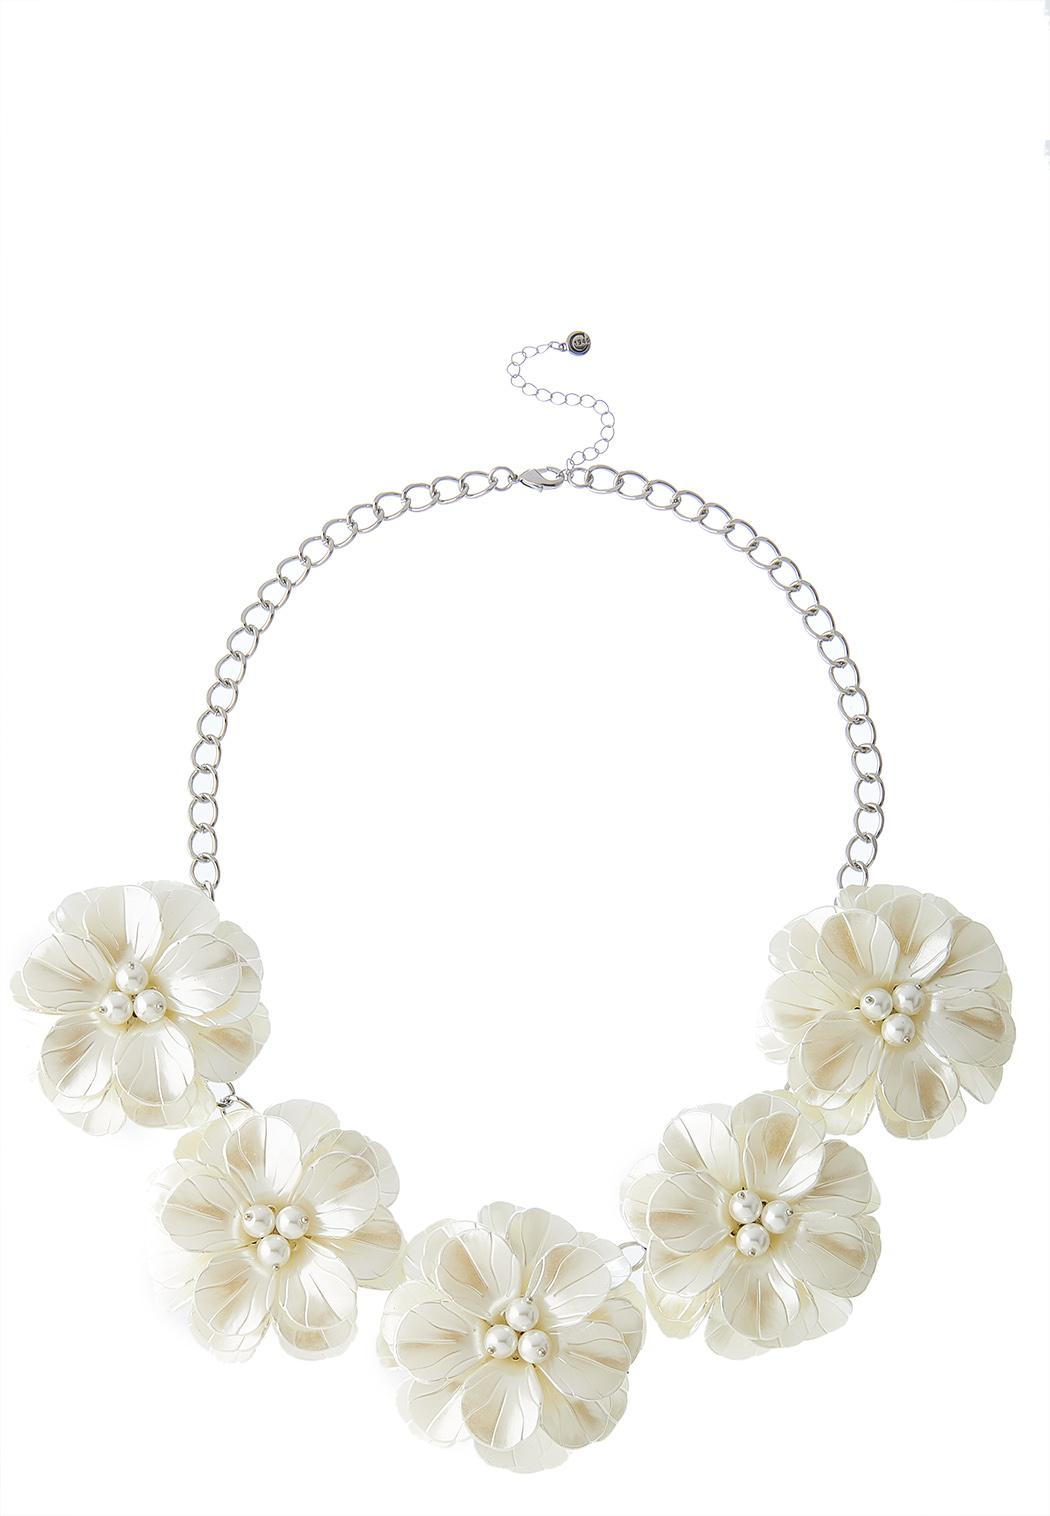 Ivory Petals And Pearls Necklace